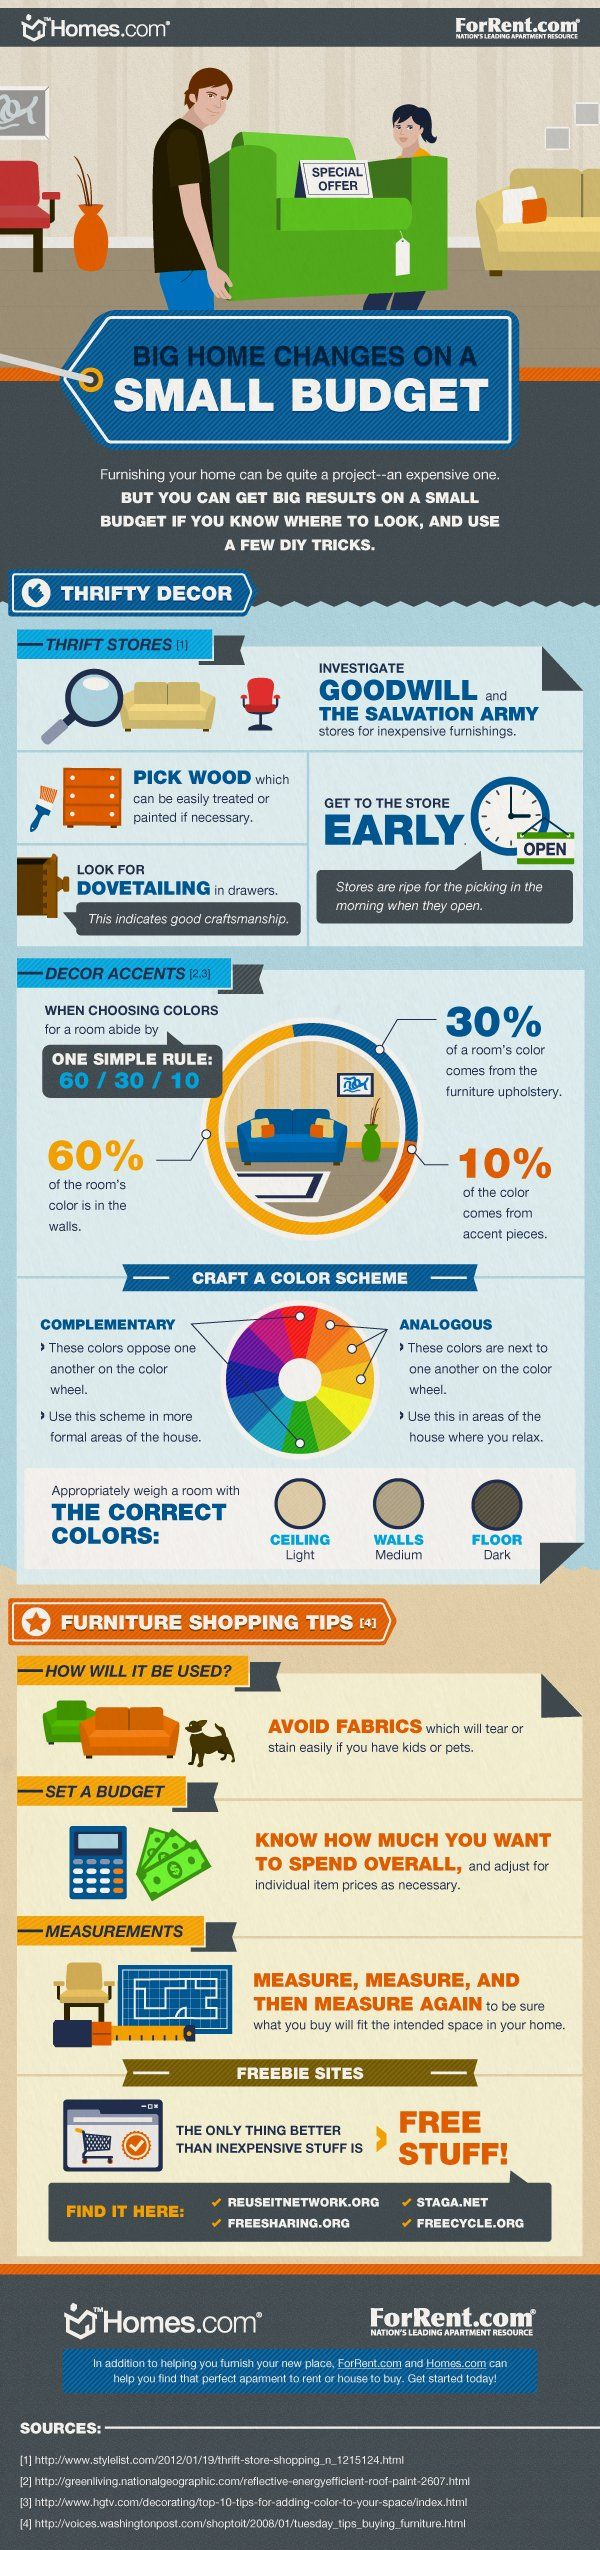 Infographic: Decorating your home on a budget | Spaces - Yahoo Homes